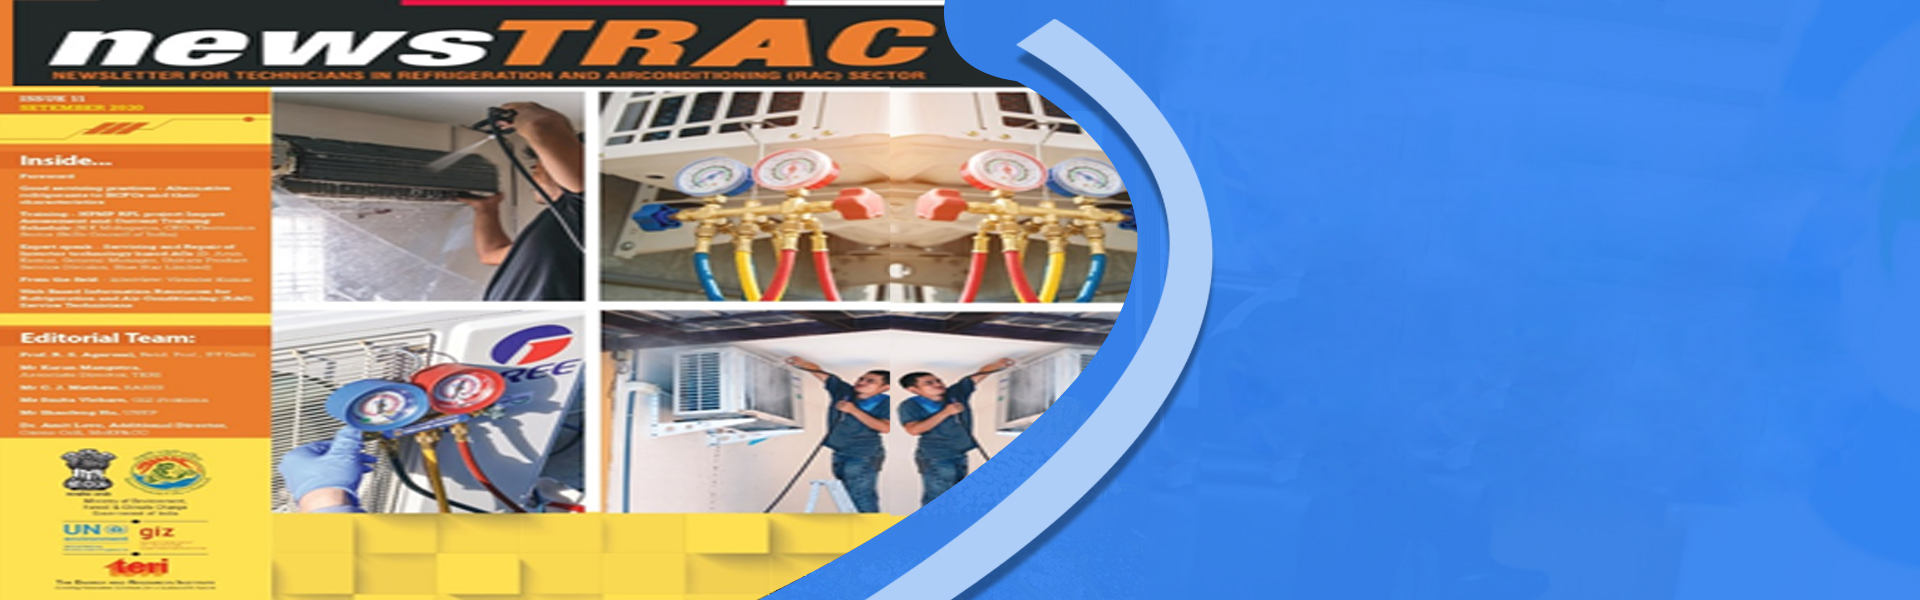 – Newsletter for technicians in Refrigeration and Air-conditioning